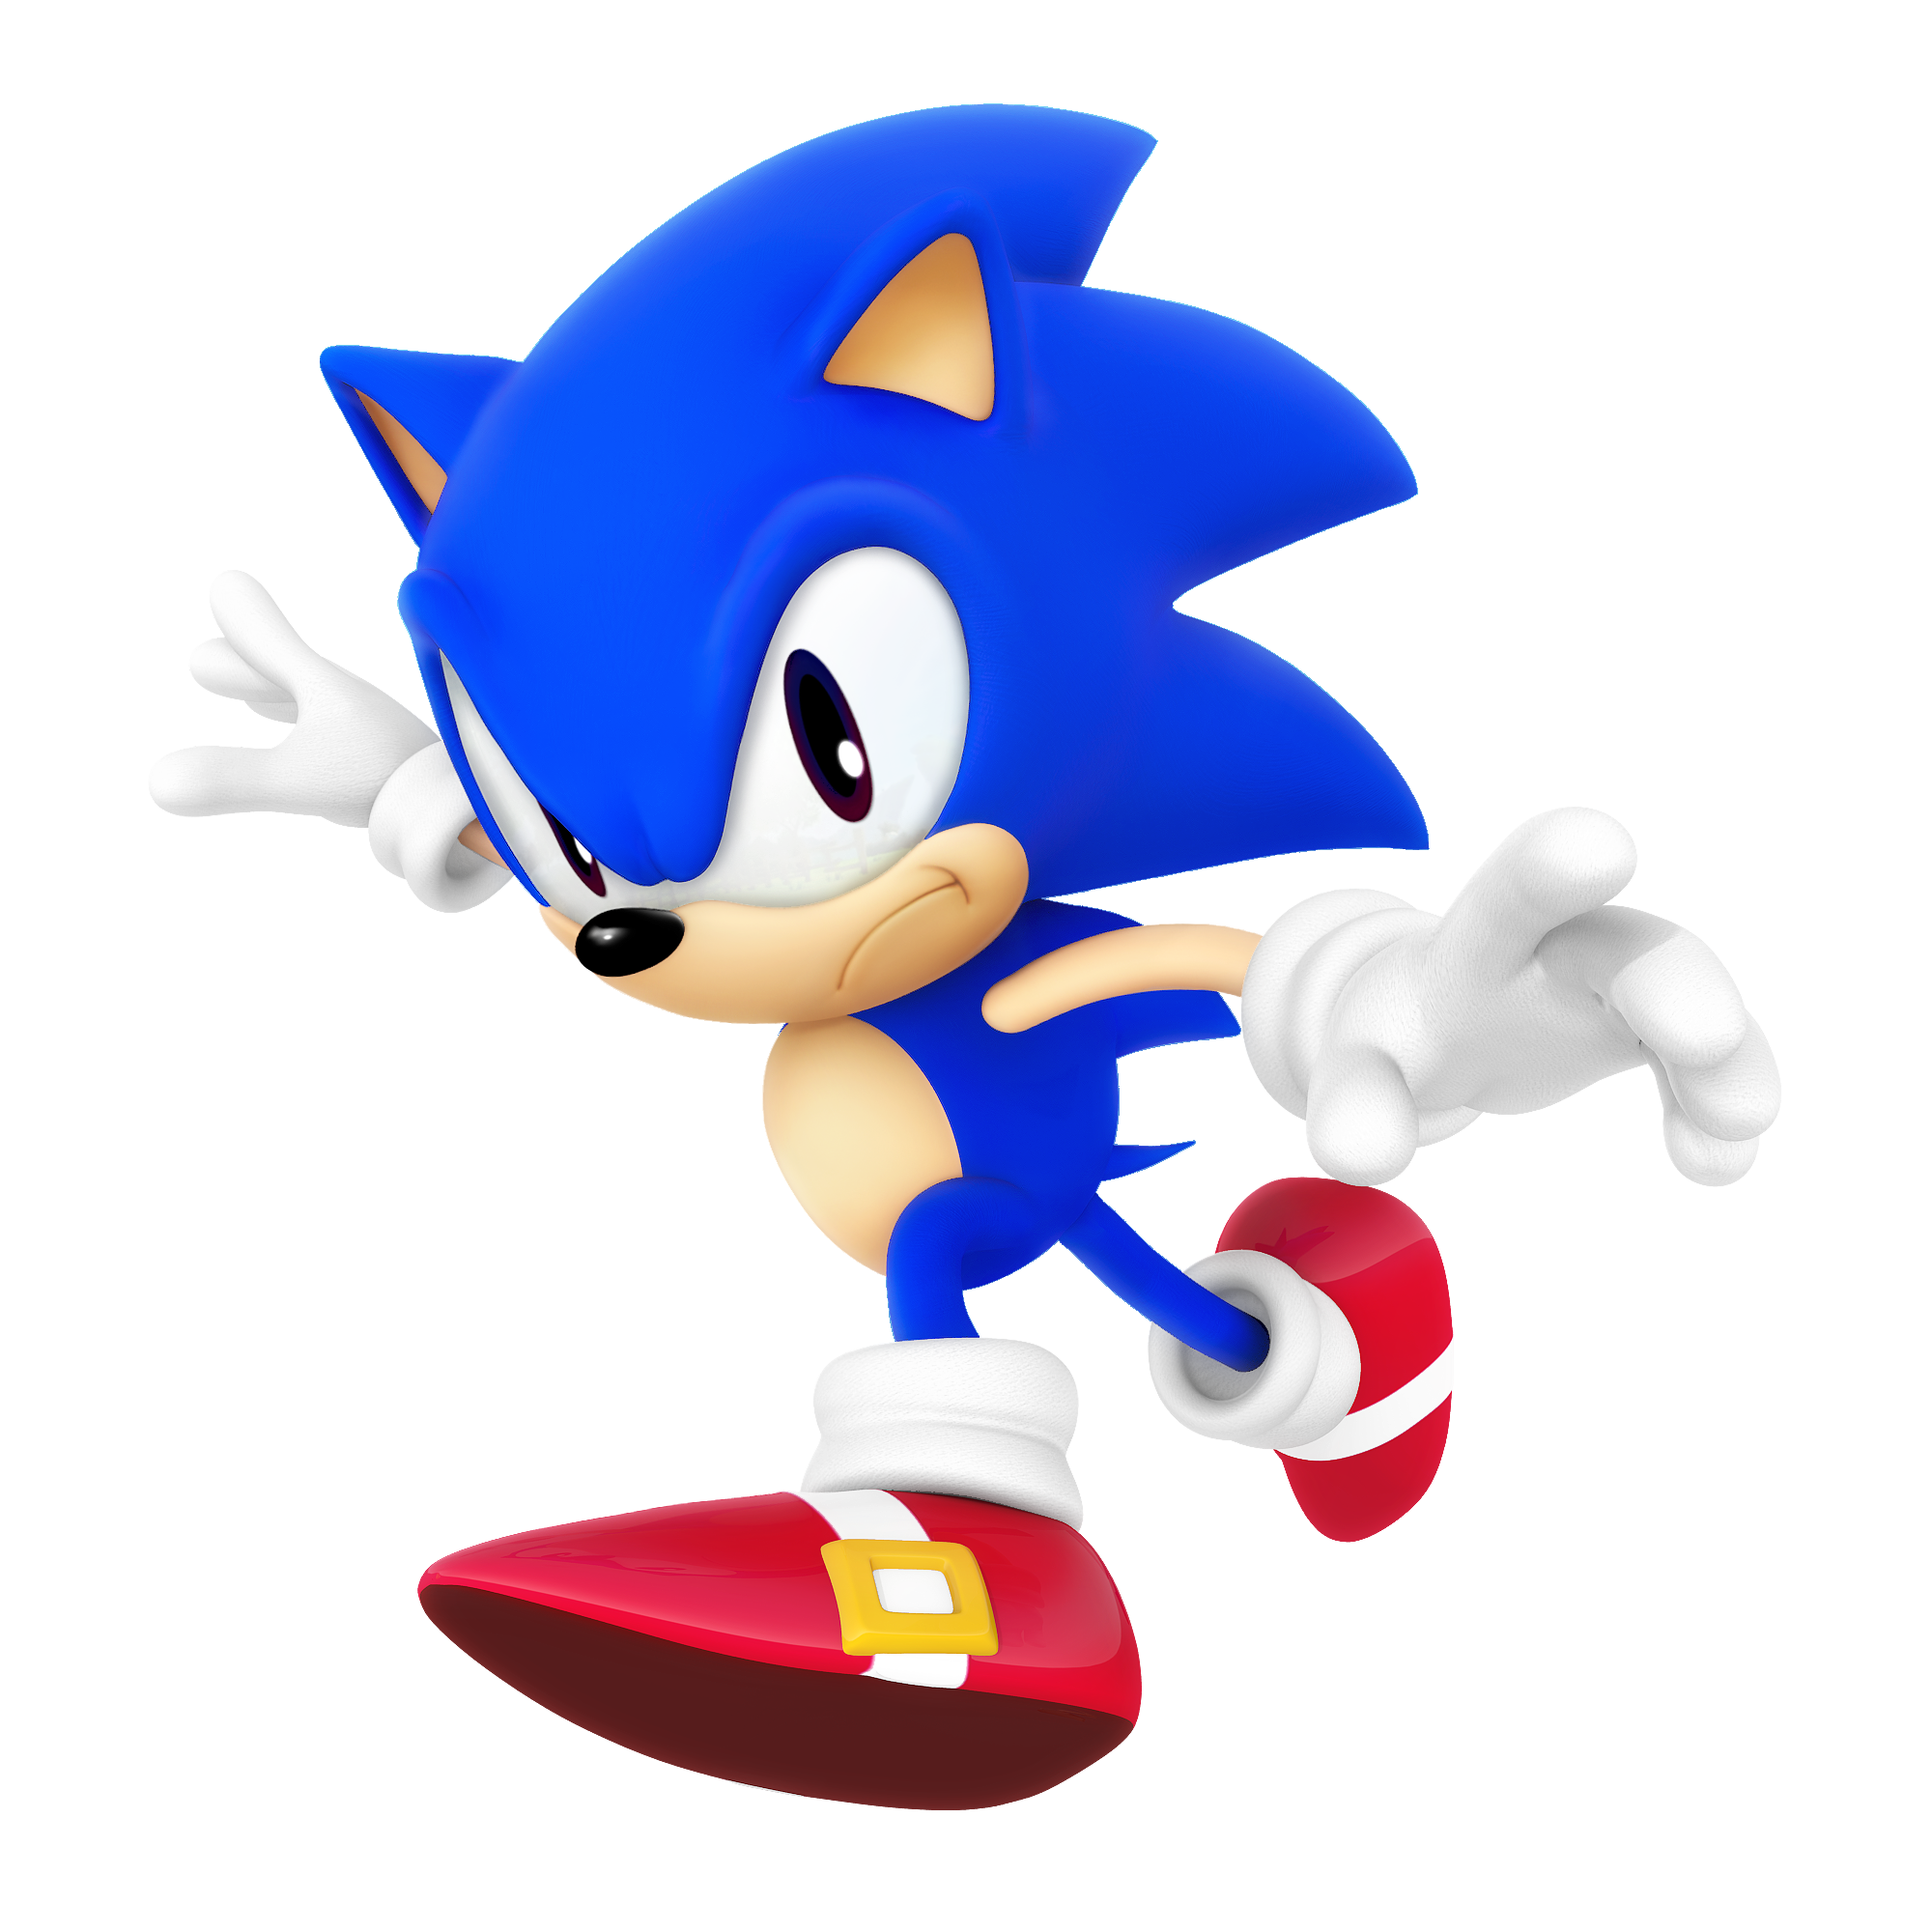 Classic Sonic Dimensional Render By Nibroc Rock On Deviantart